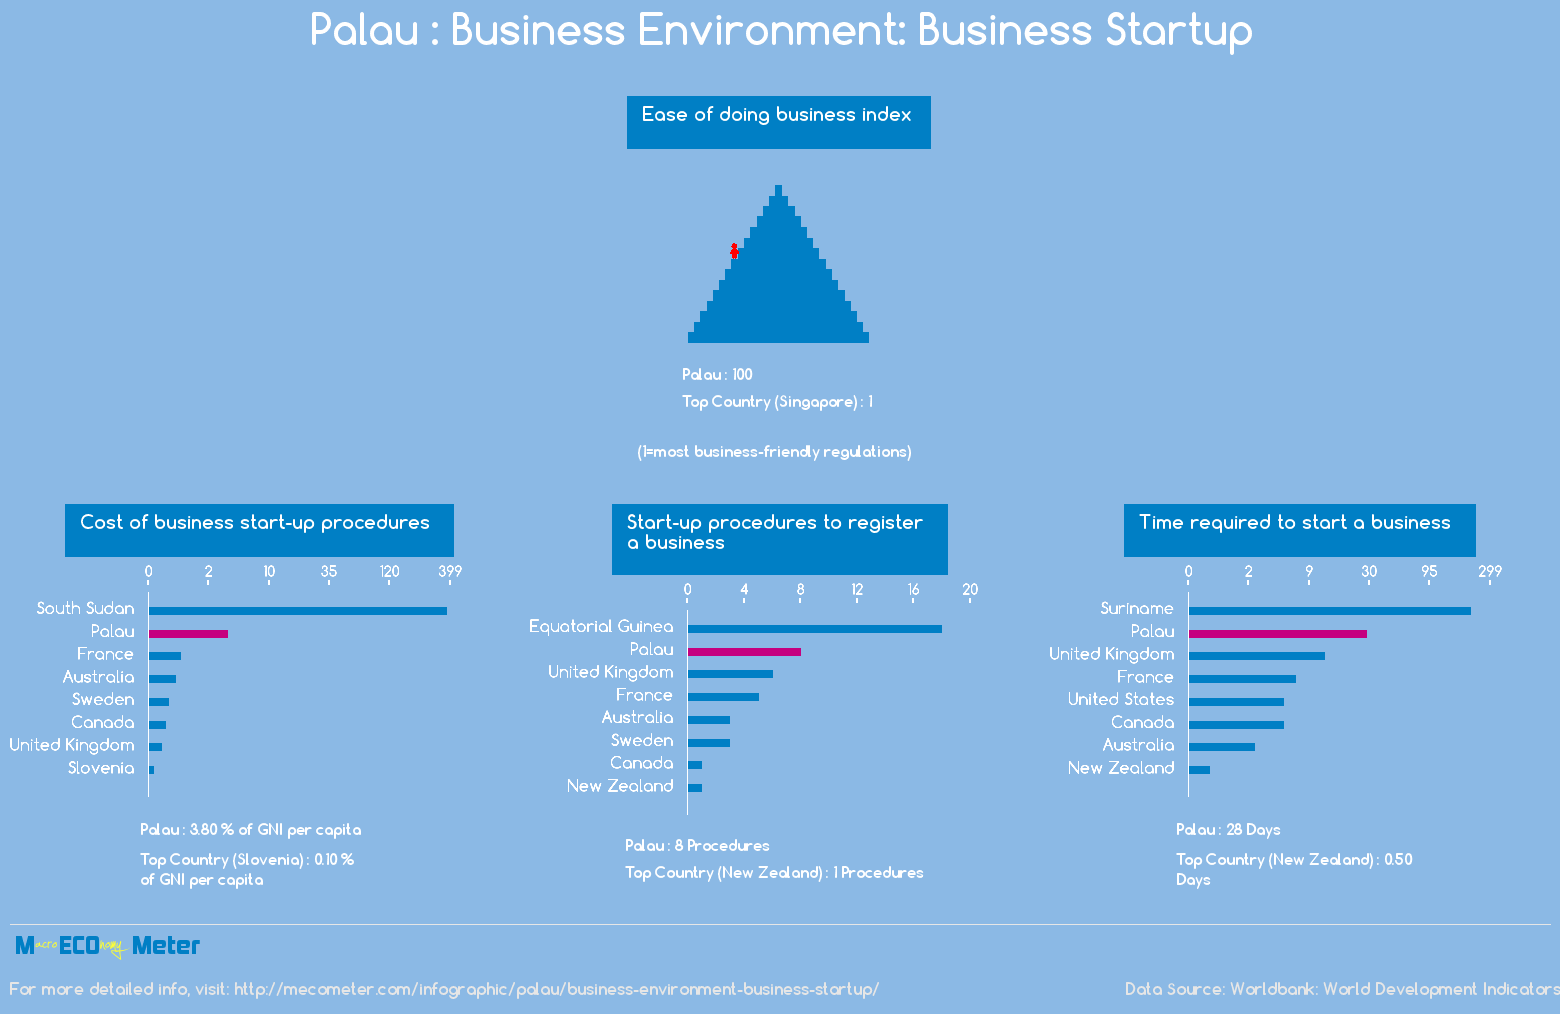 Palau : Business Environment: Business Startup